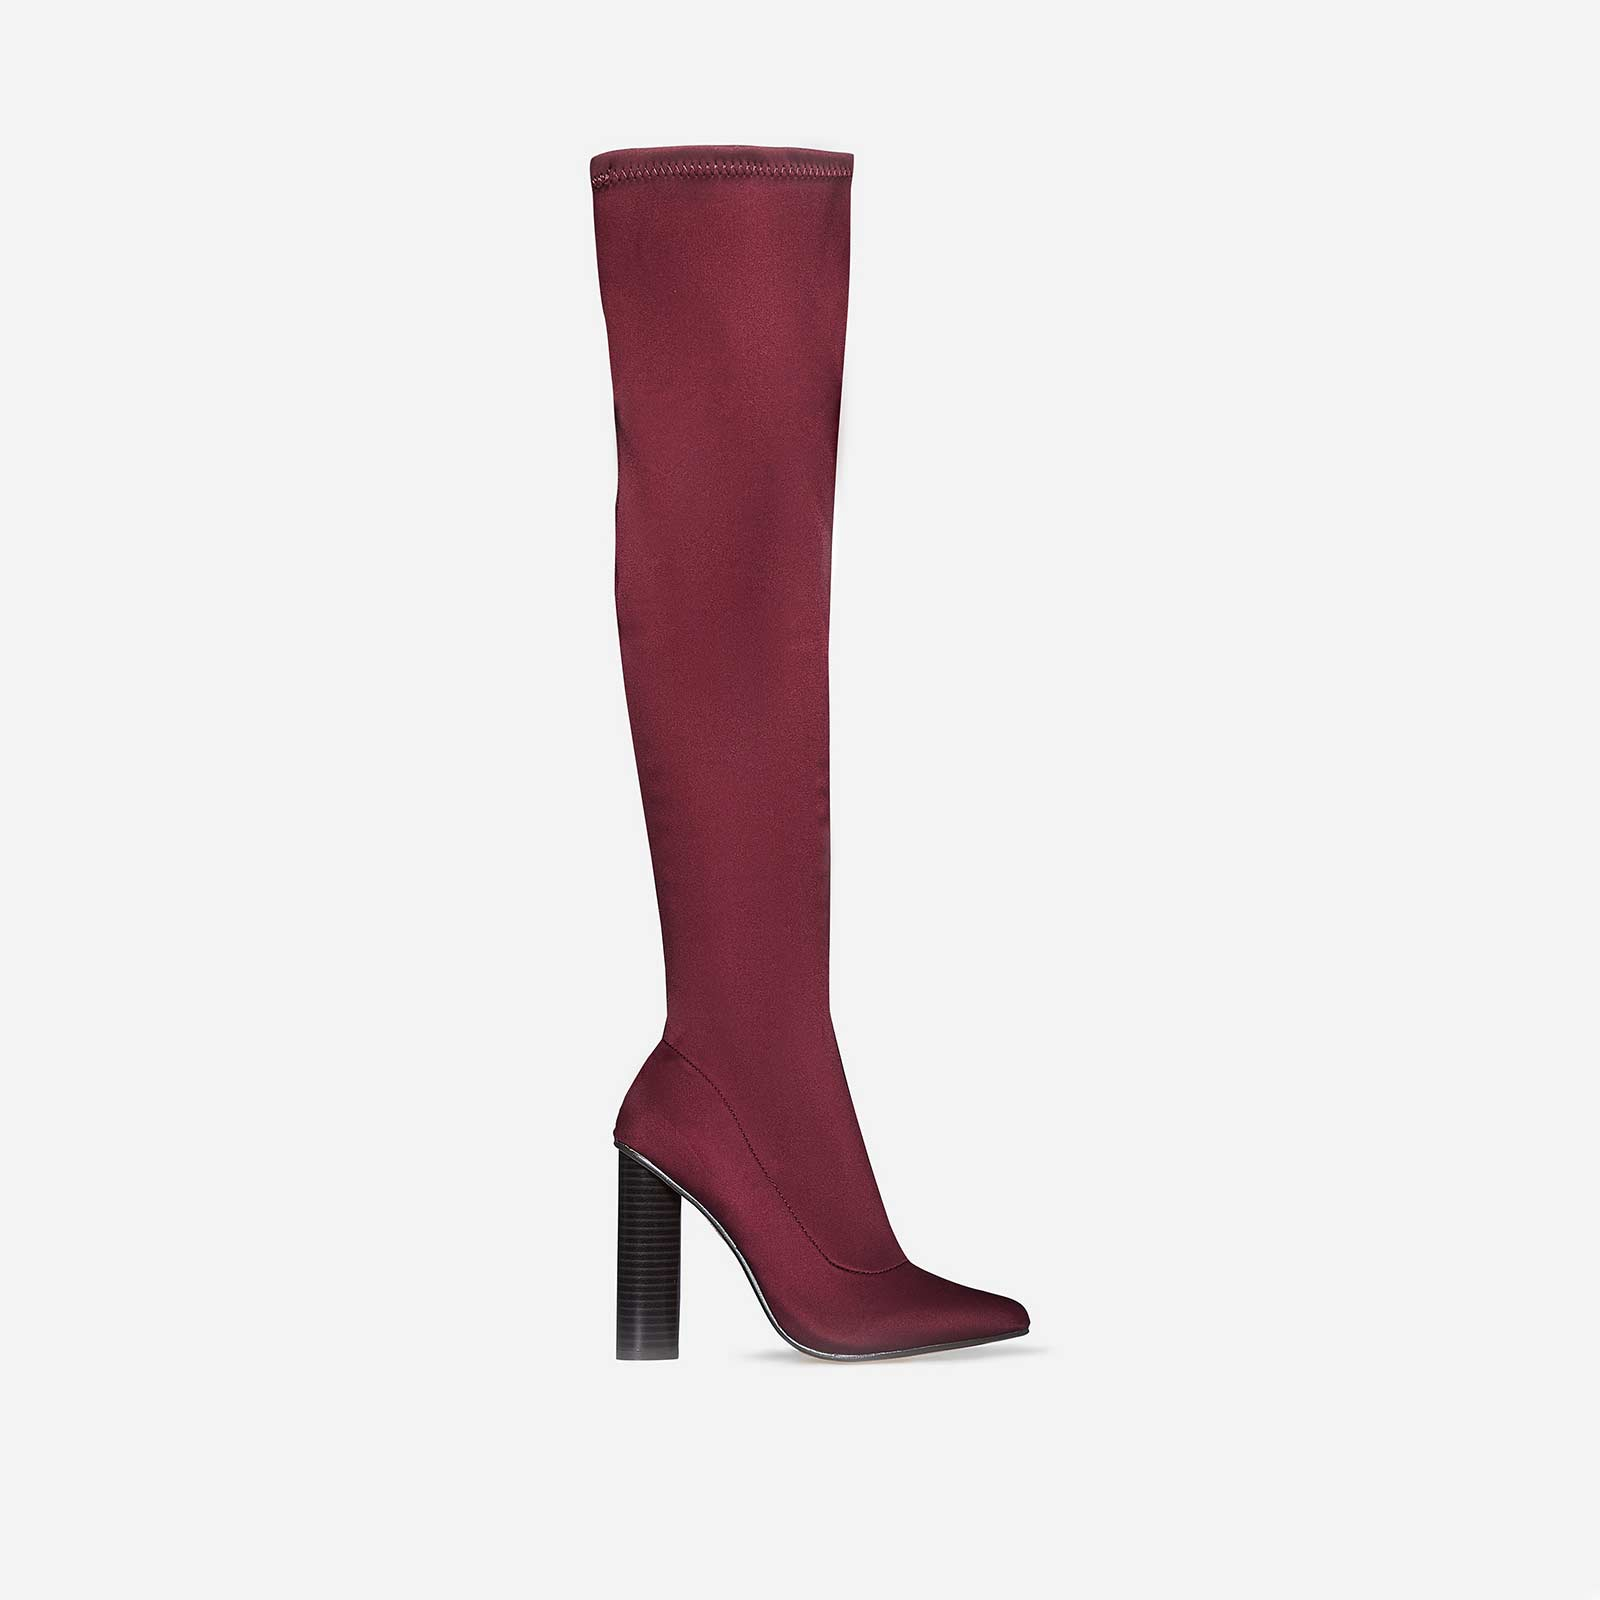 Anja Over The Knee Long Boot In Burgundy Lycra